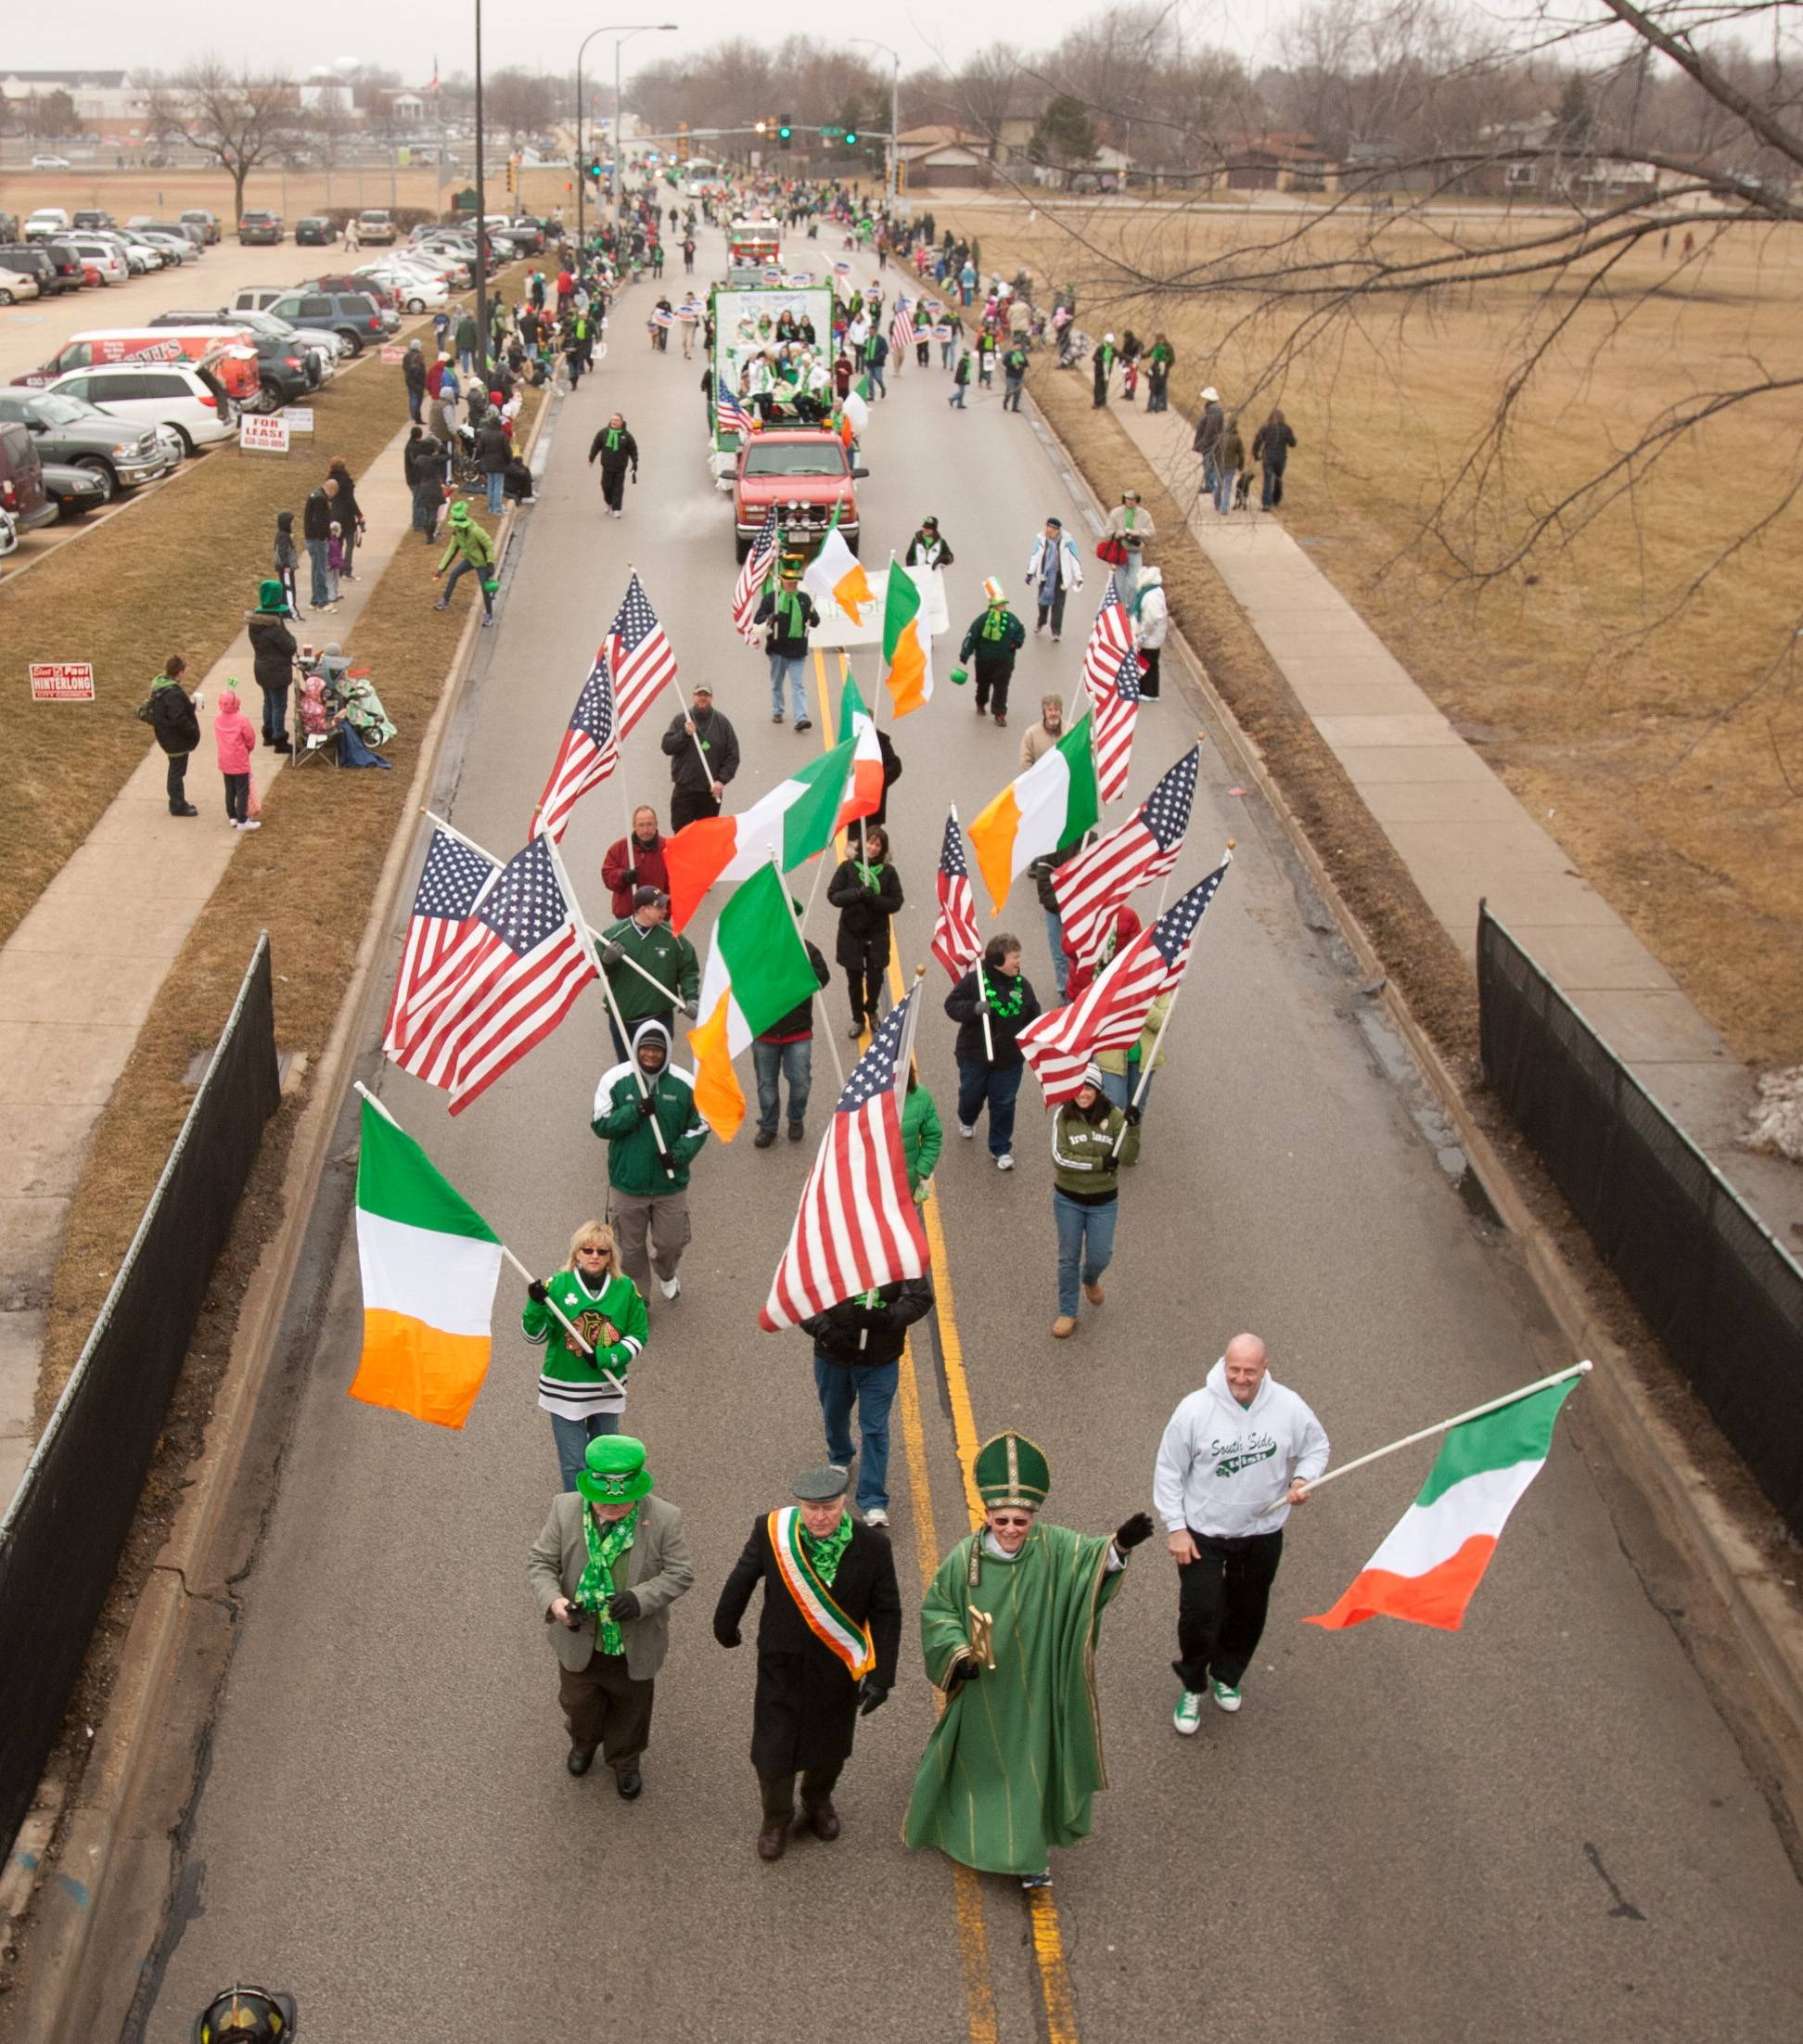 The Naperville's St. Patrick's Day parade starts at 10 a.m. Saturday, March 15, at Naperville North High School and marches south on Mill Street into downtown. This year's parade is expected to have about 90 units.